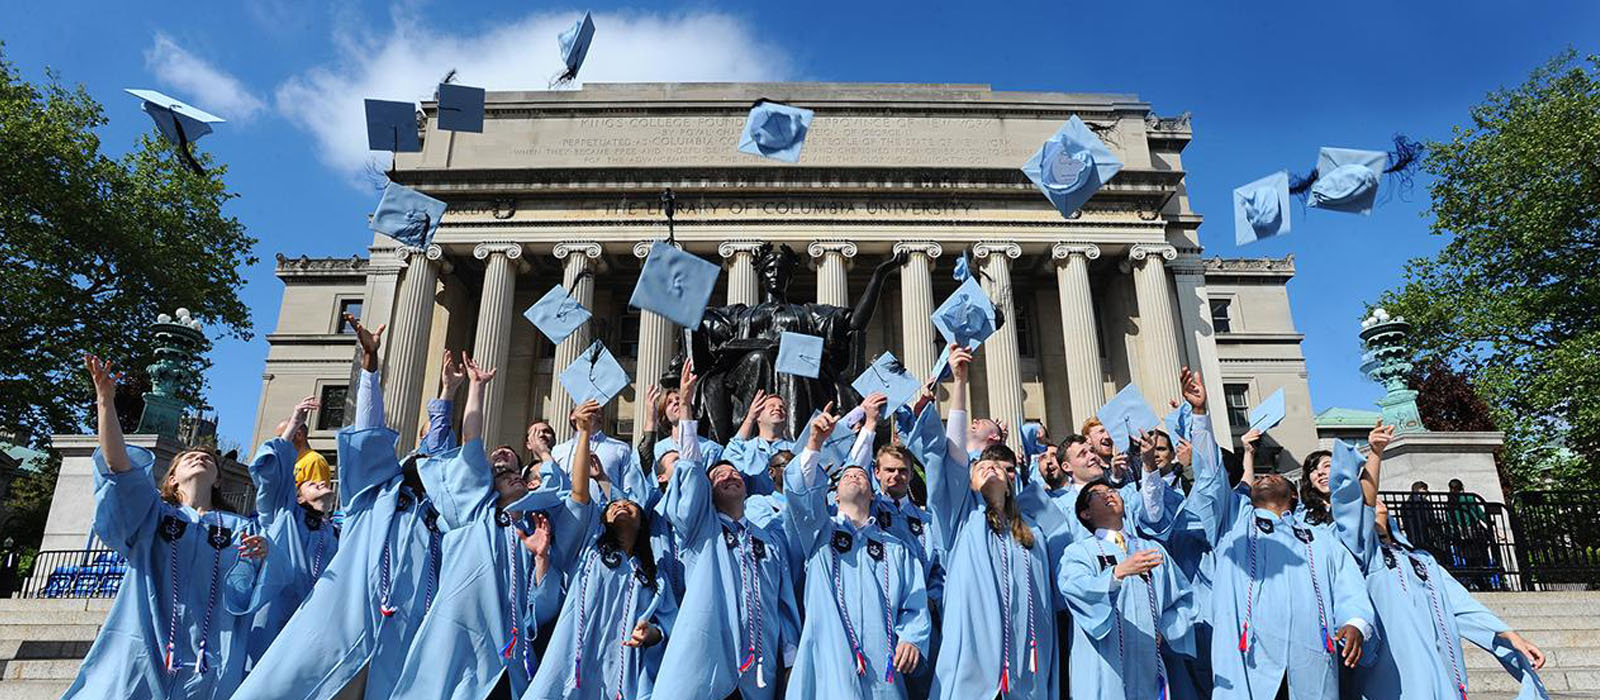 Congratulations to the Columbia Class of 2019